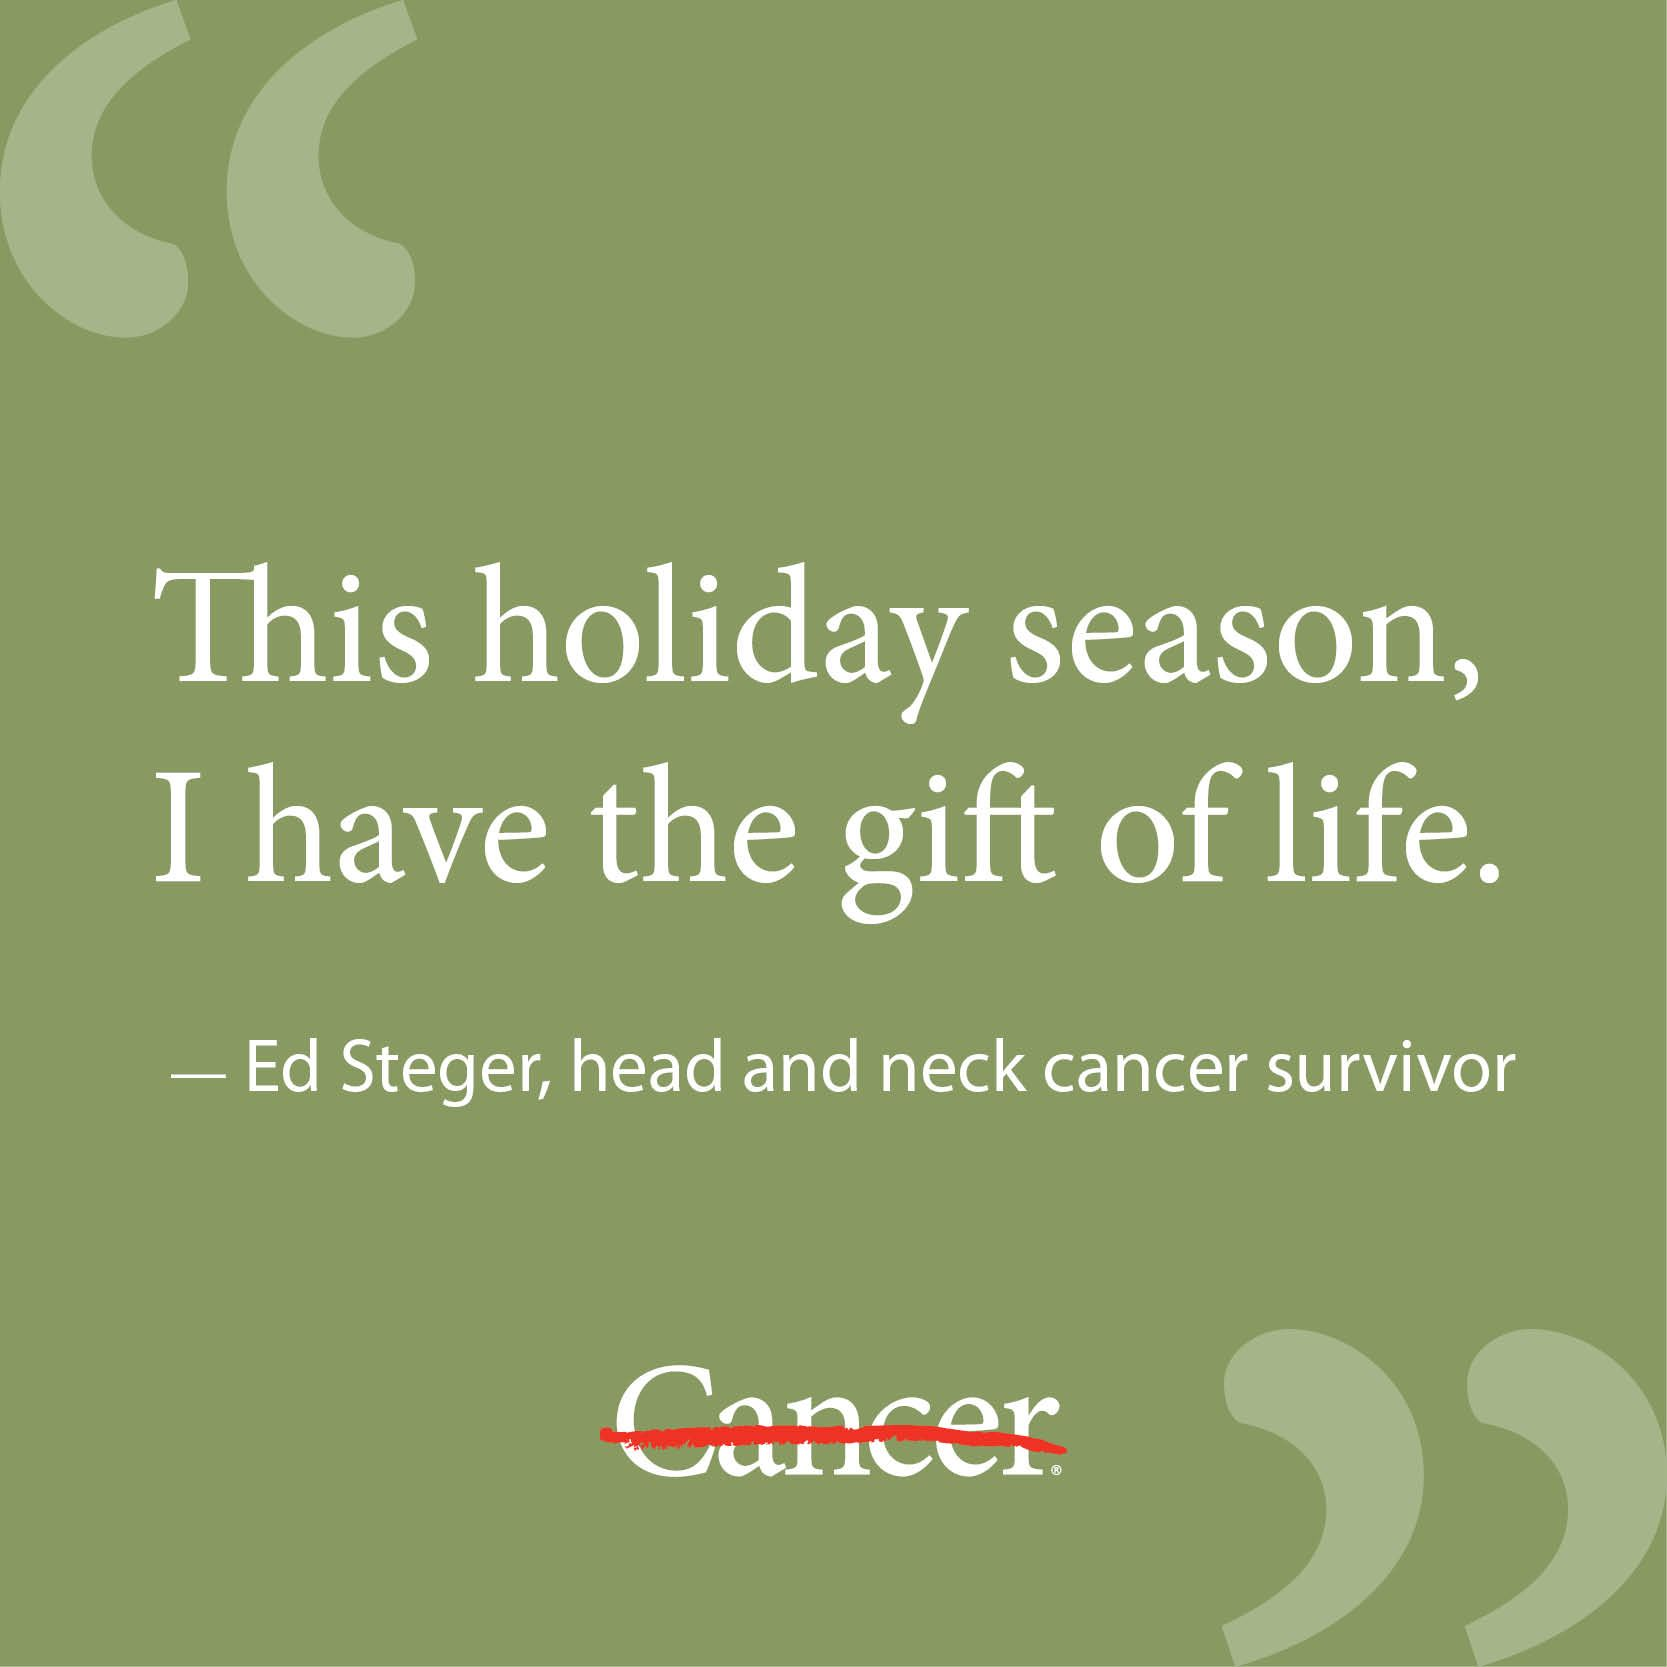 Cancer Survivor Quotes Ed Steger Is A Head And Neck Cancer Survivorafter Celebrating